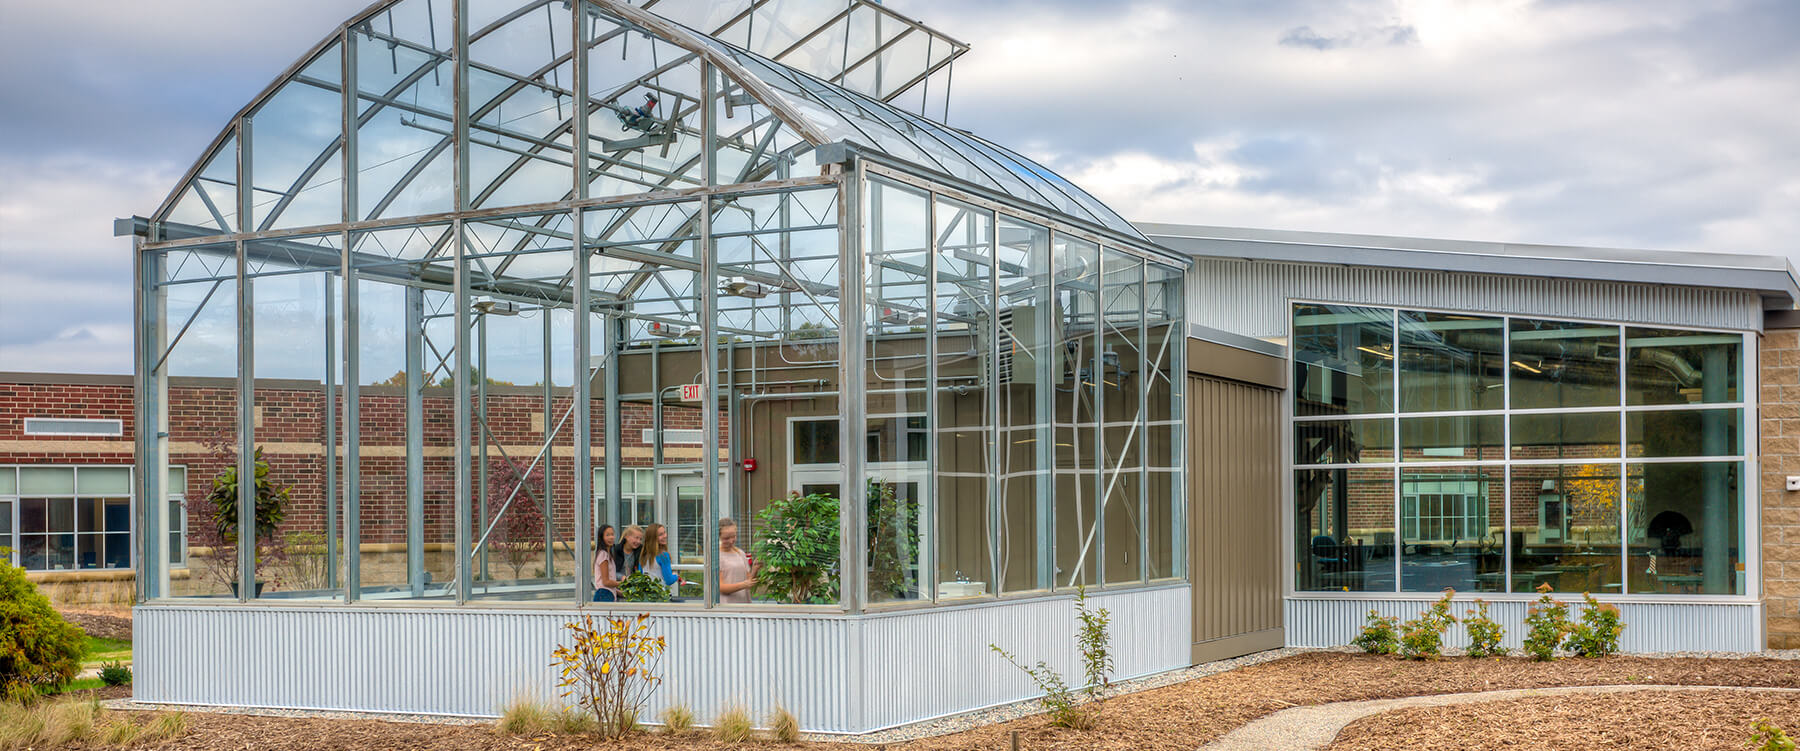 Ada Christian Integrated Outdoor Education greenhouse exterior